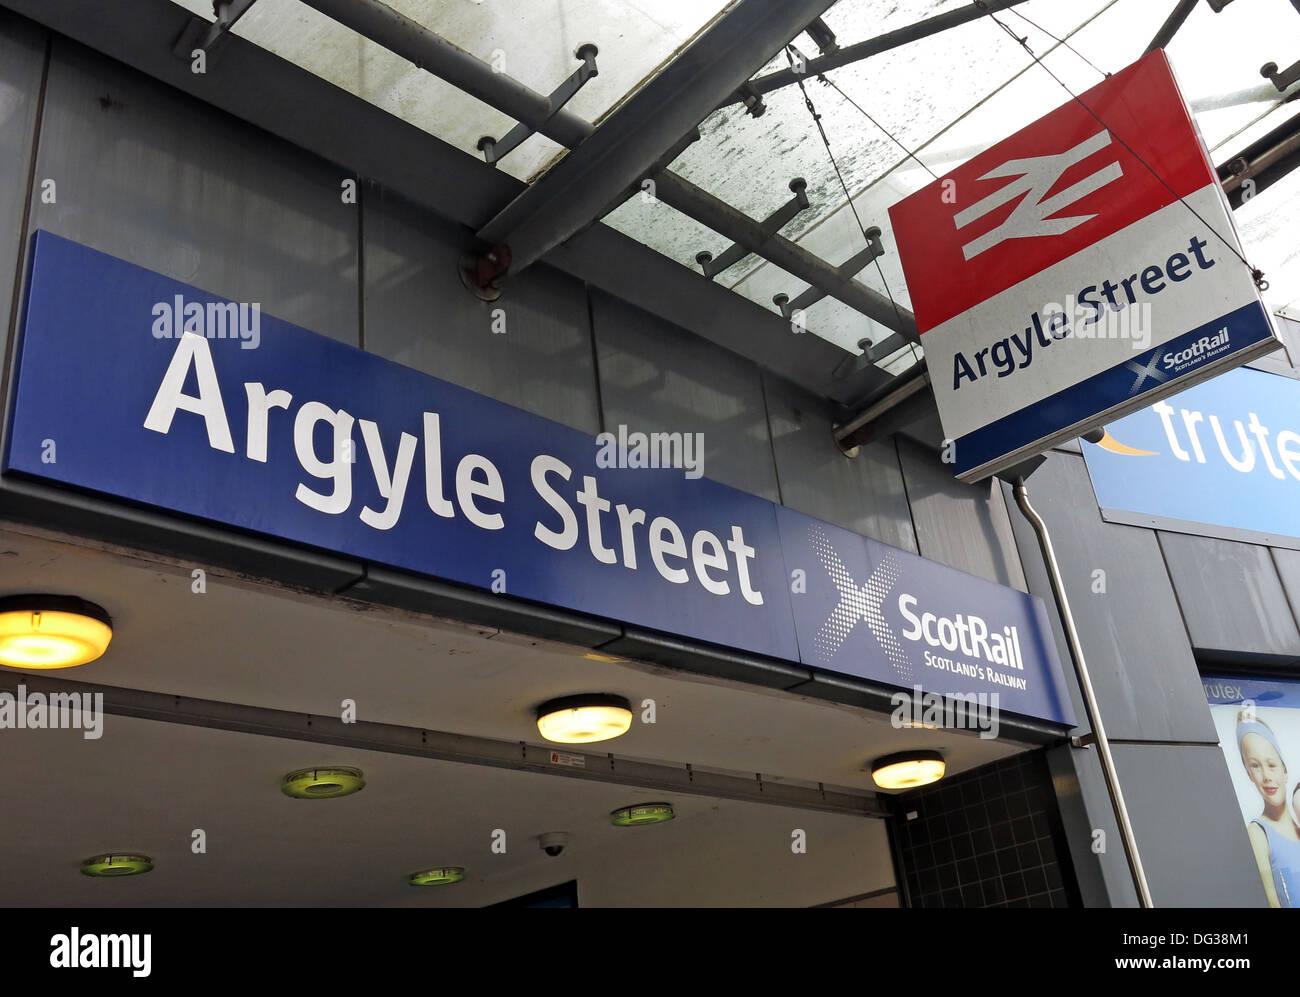 Glasgow Argyle Street Scotrail Station Glasgow Scotland UK - Stock Image